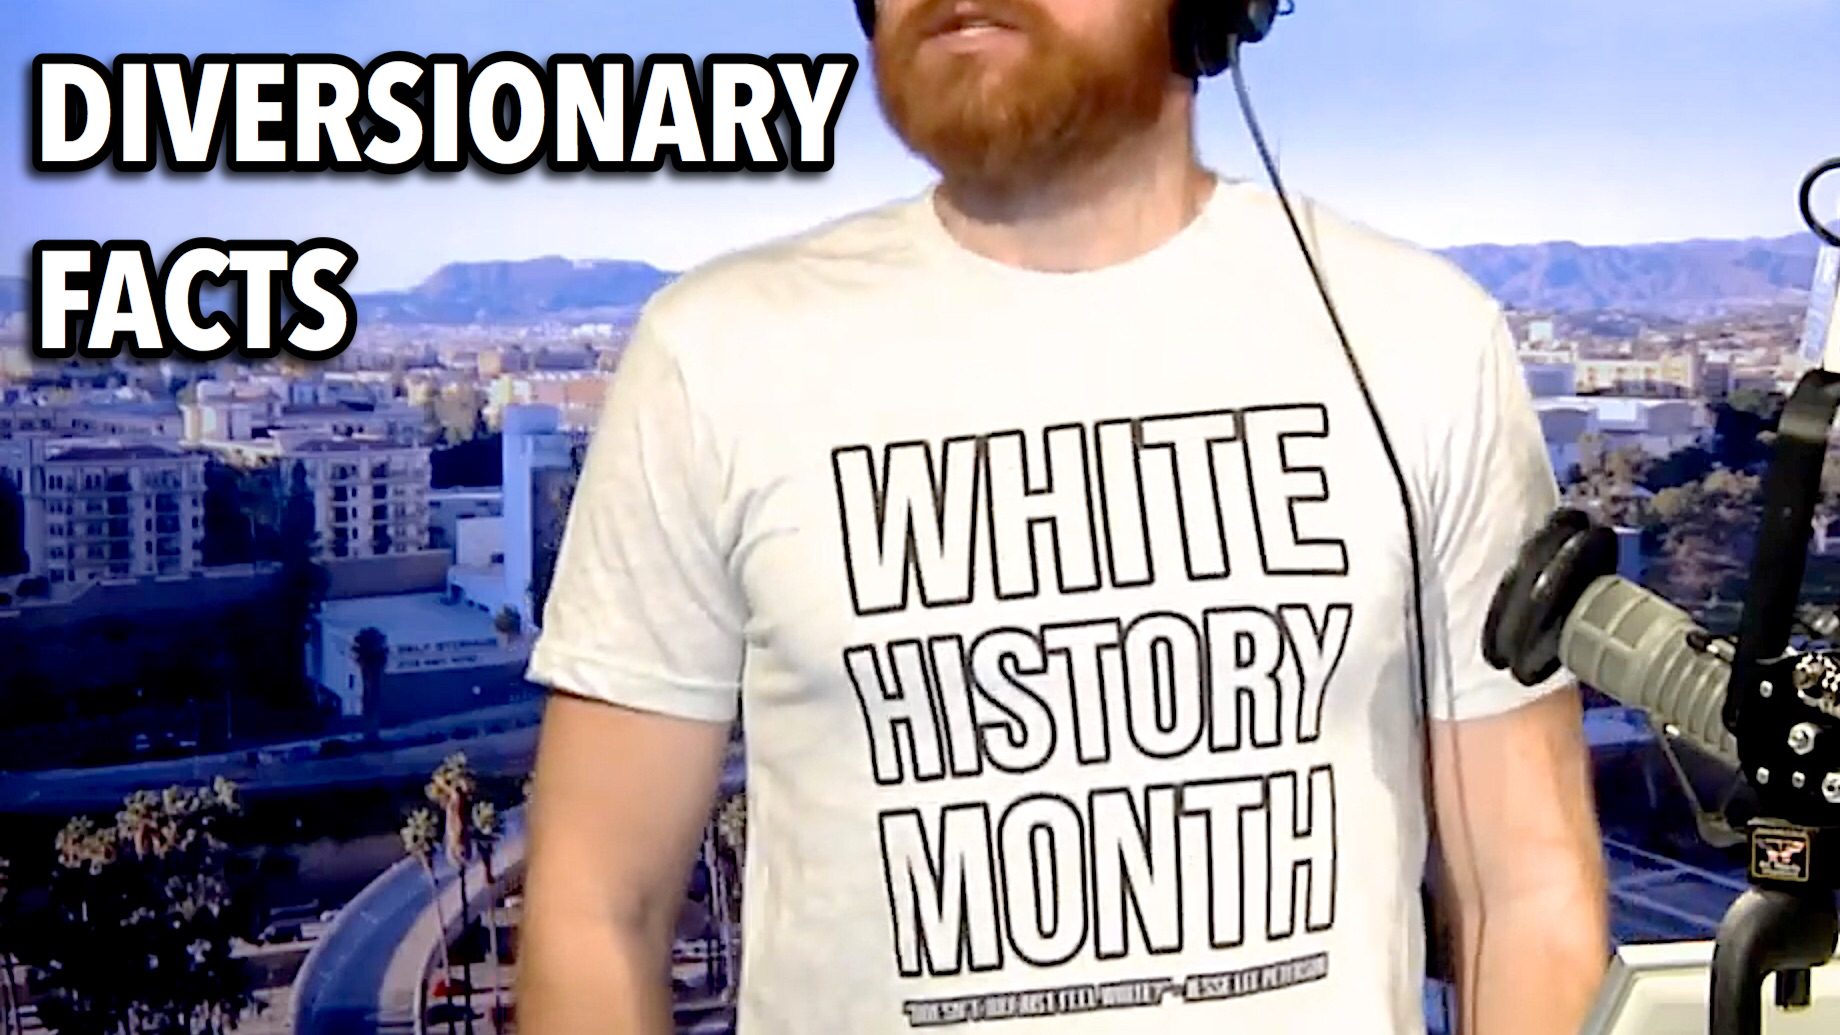 c114e9ff4 Get your White History Month t-shirt from Jesse Lee Peterson Teespring  store!